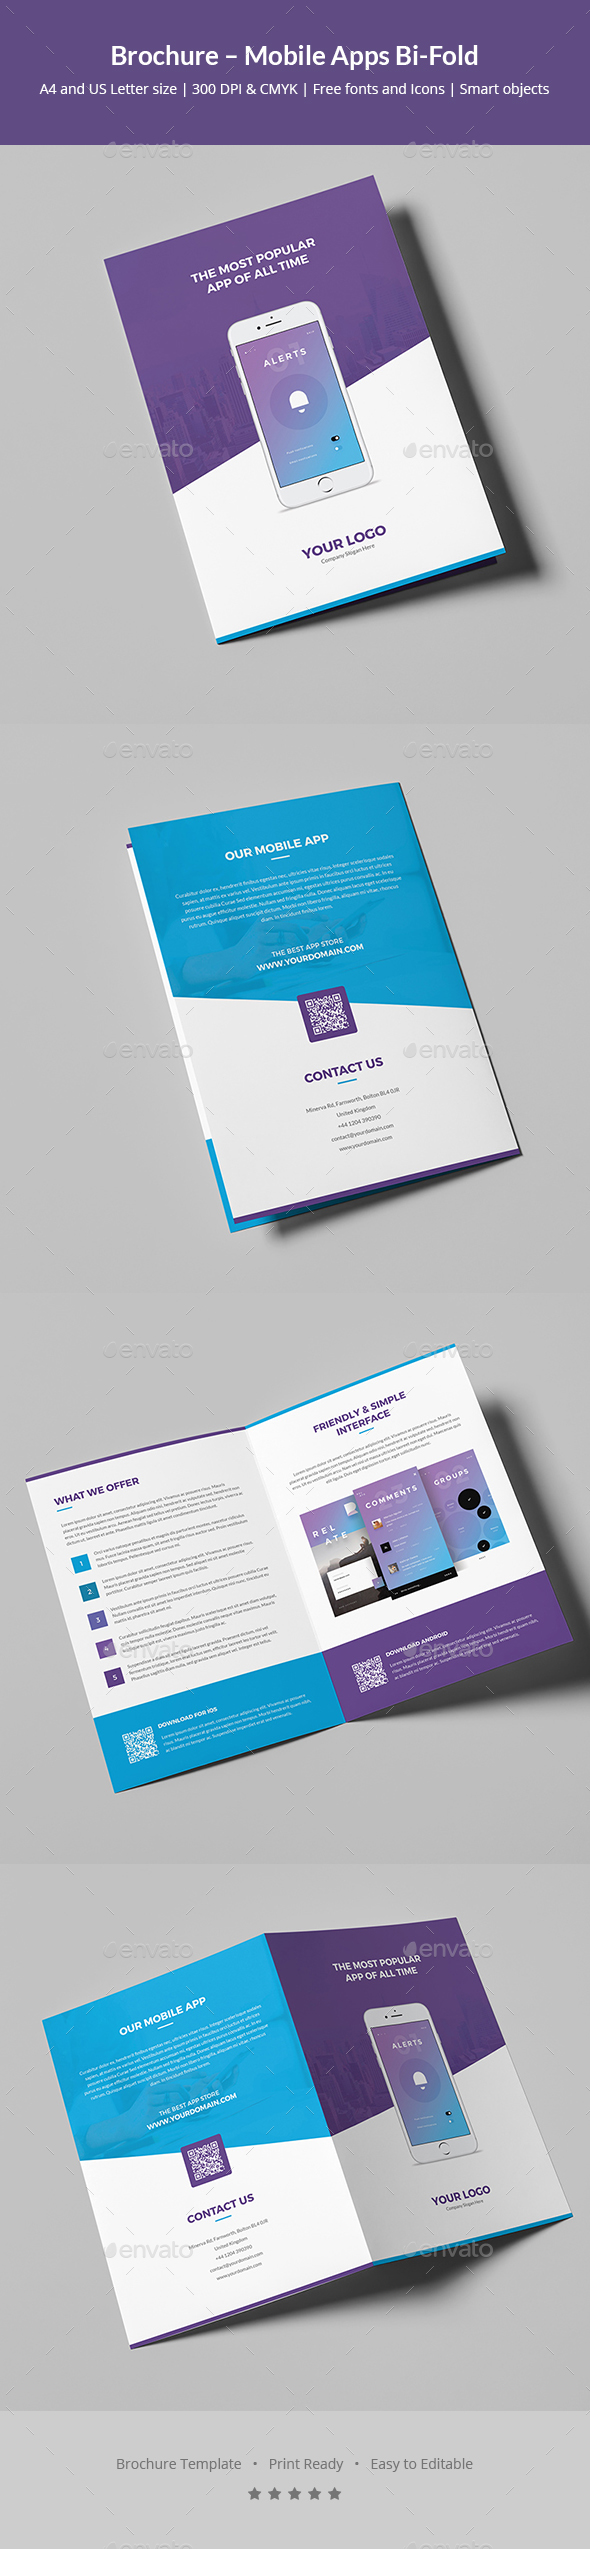 GraphicRiver Brochure Mobile Apps Bi-Fold 20365360